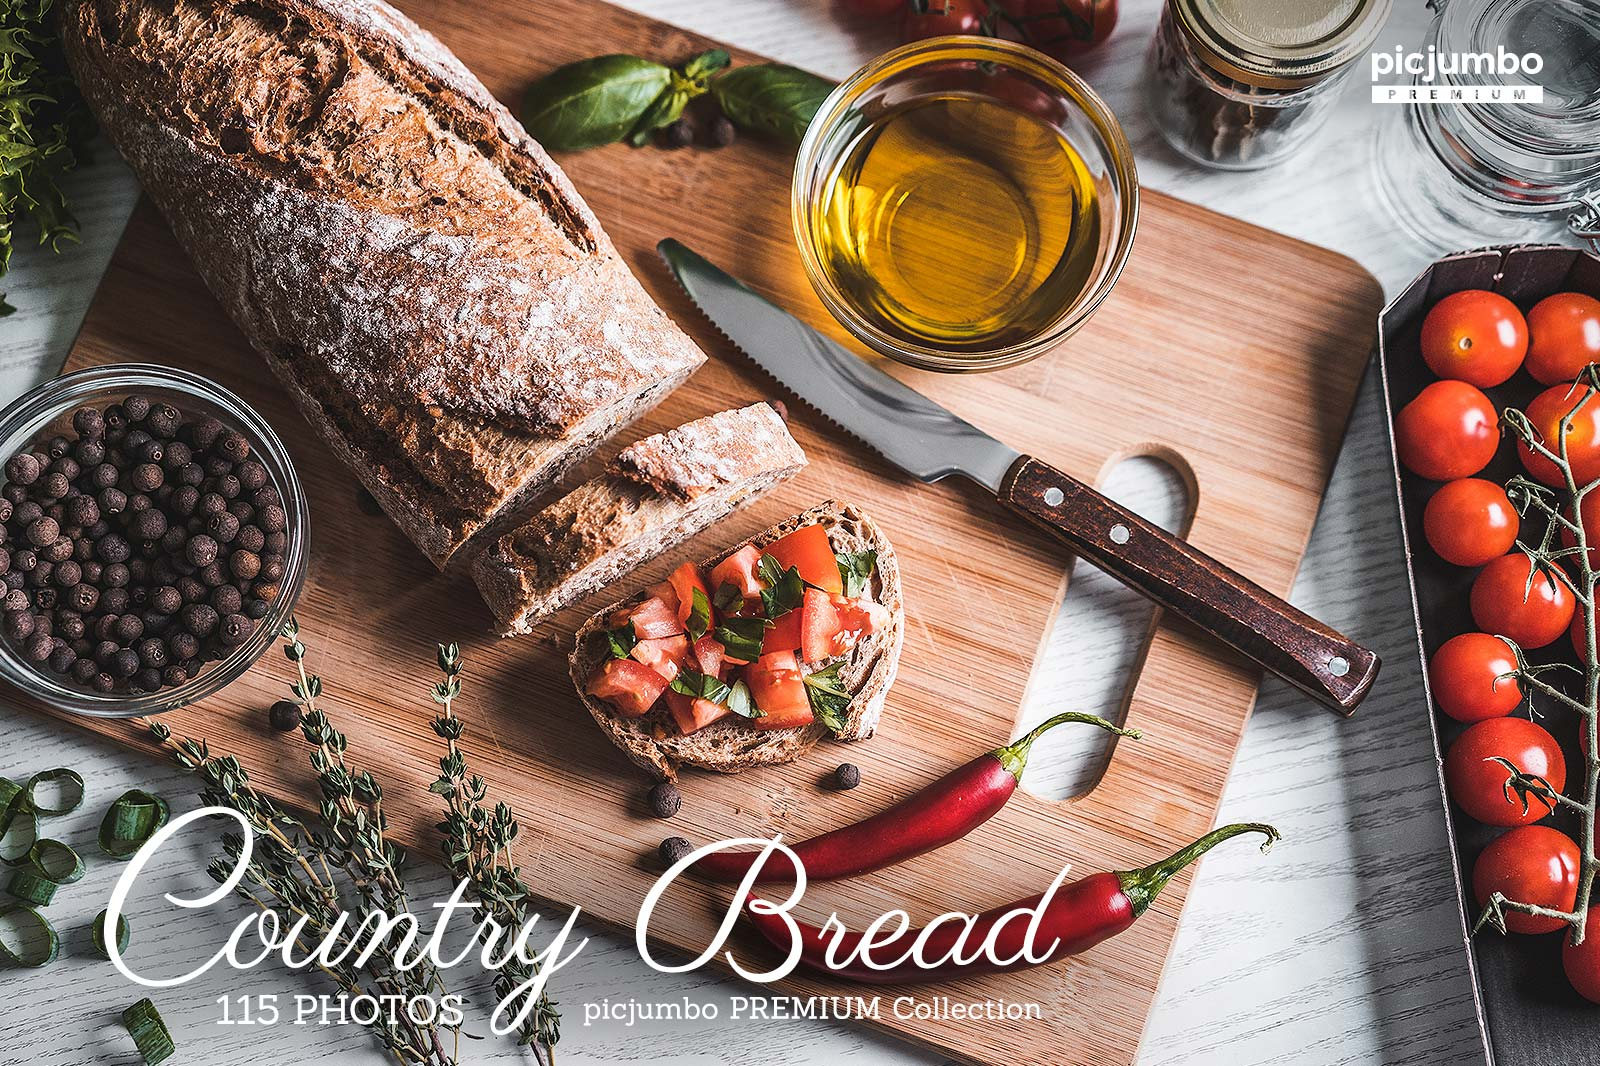 Country Bread — get it now in picjumbo PREMIUM!